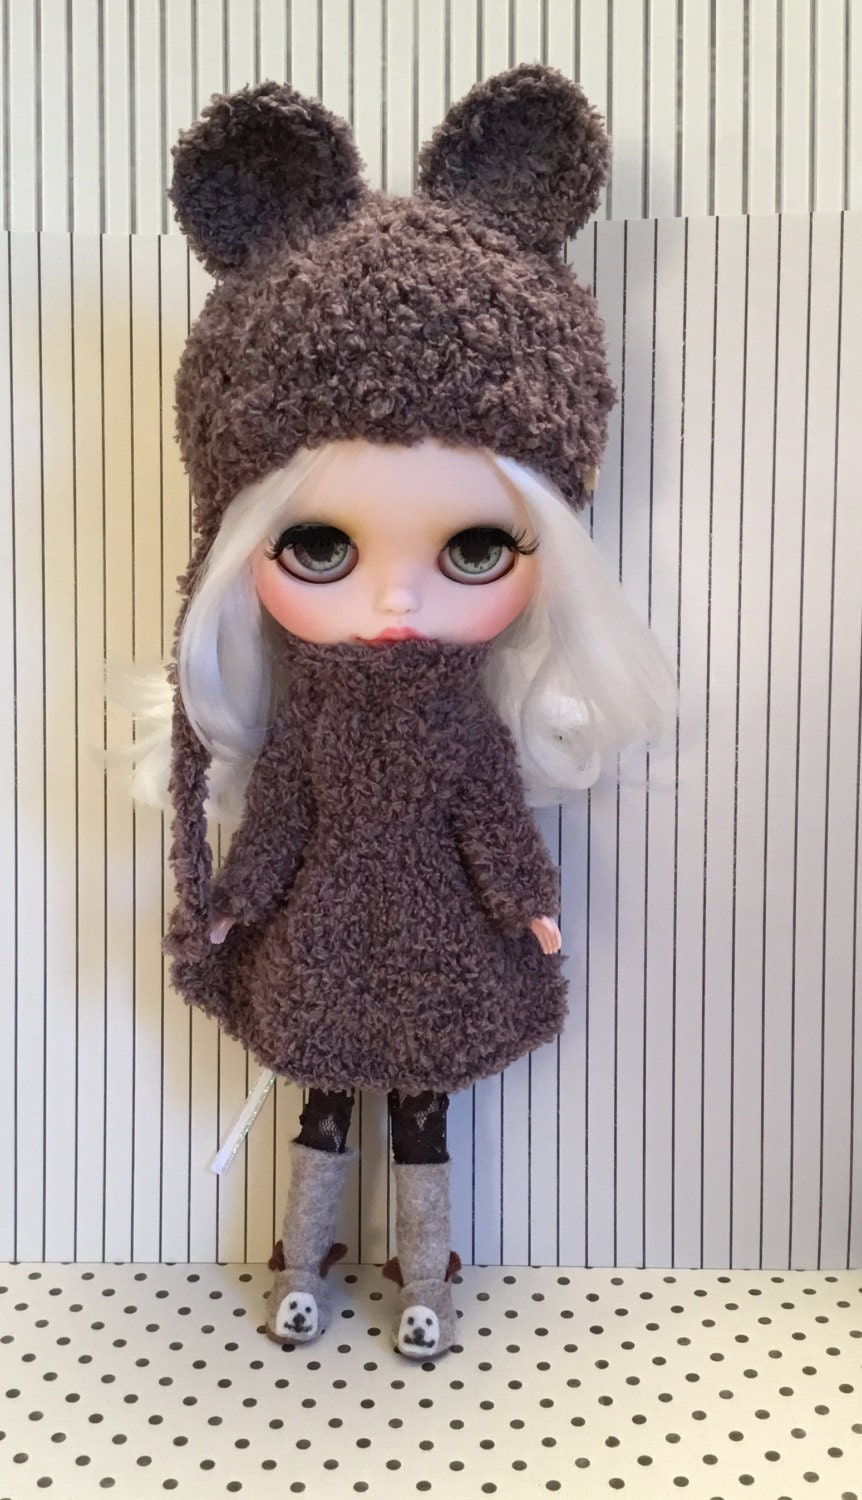 Blythe doll  outfit  hand knitted in super soft teddy yarn dress and matching bear hat